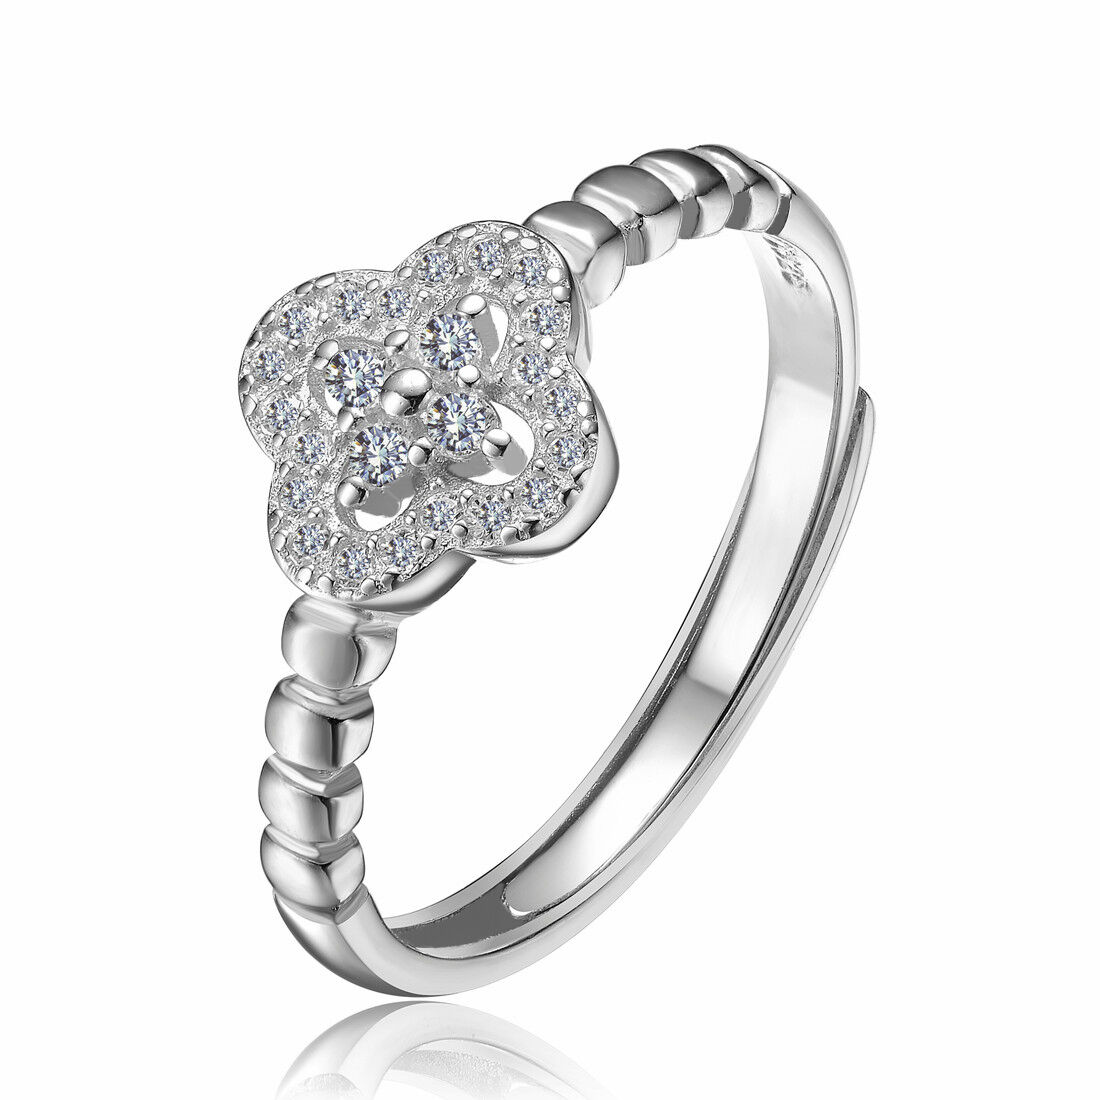 CCJewelry 925 Sterling Silver Zircon Flower Women Promise Adjustable Open Ring Fashion Jewelry